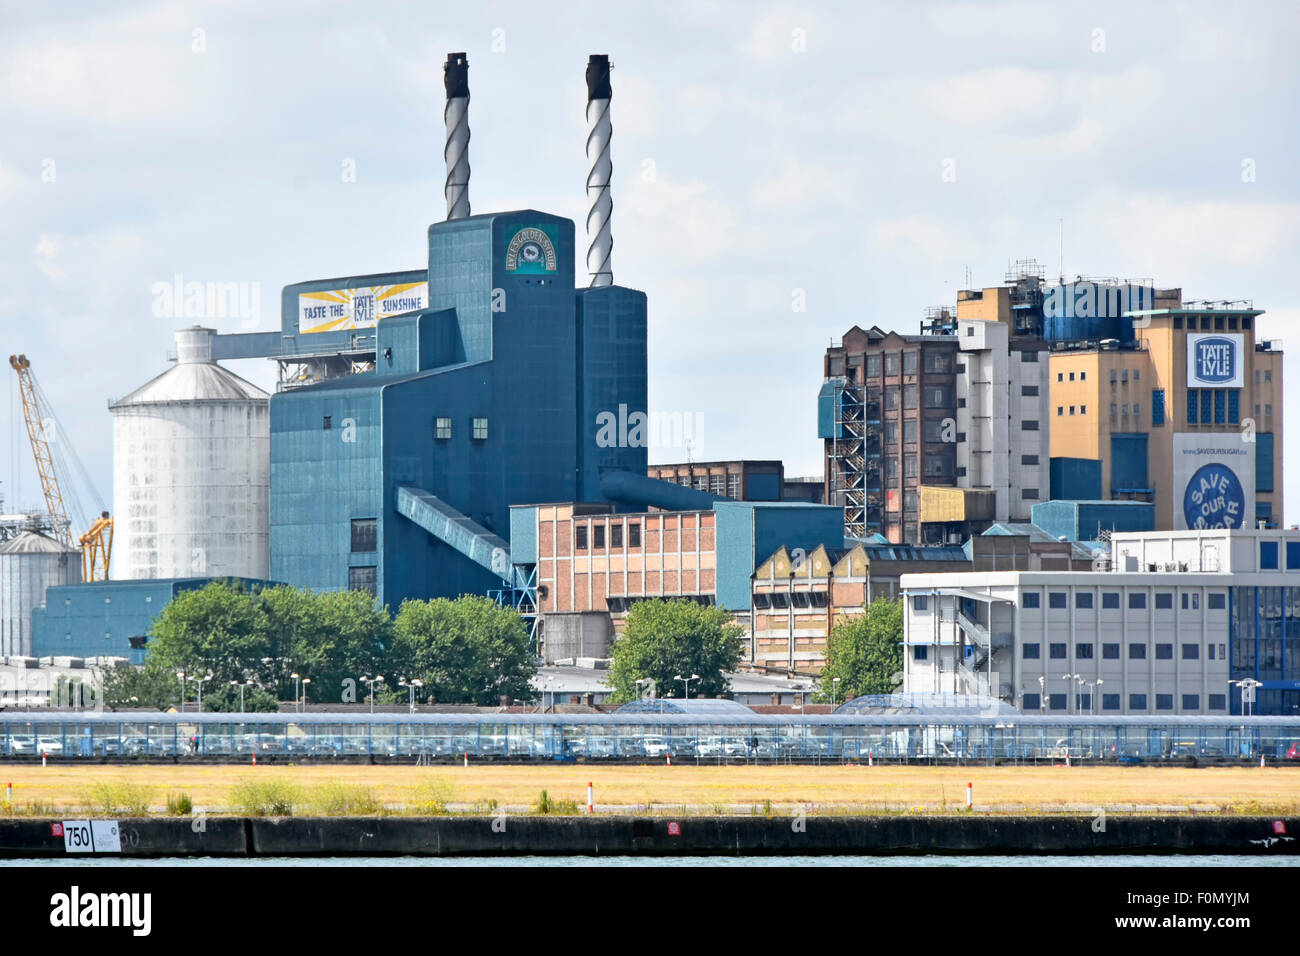 Tate and Lyle sugar refinery factory buildings seen beyond London City Airport runway London City Airport Silvertown - Stock Image